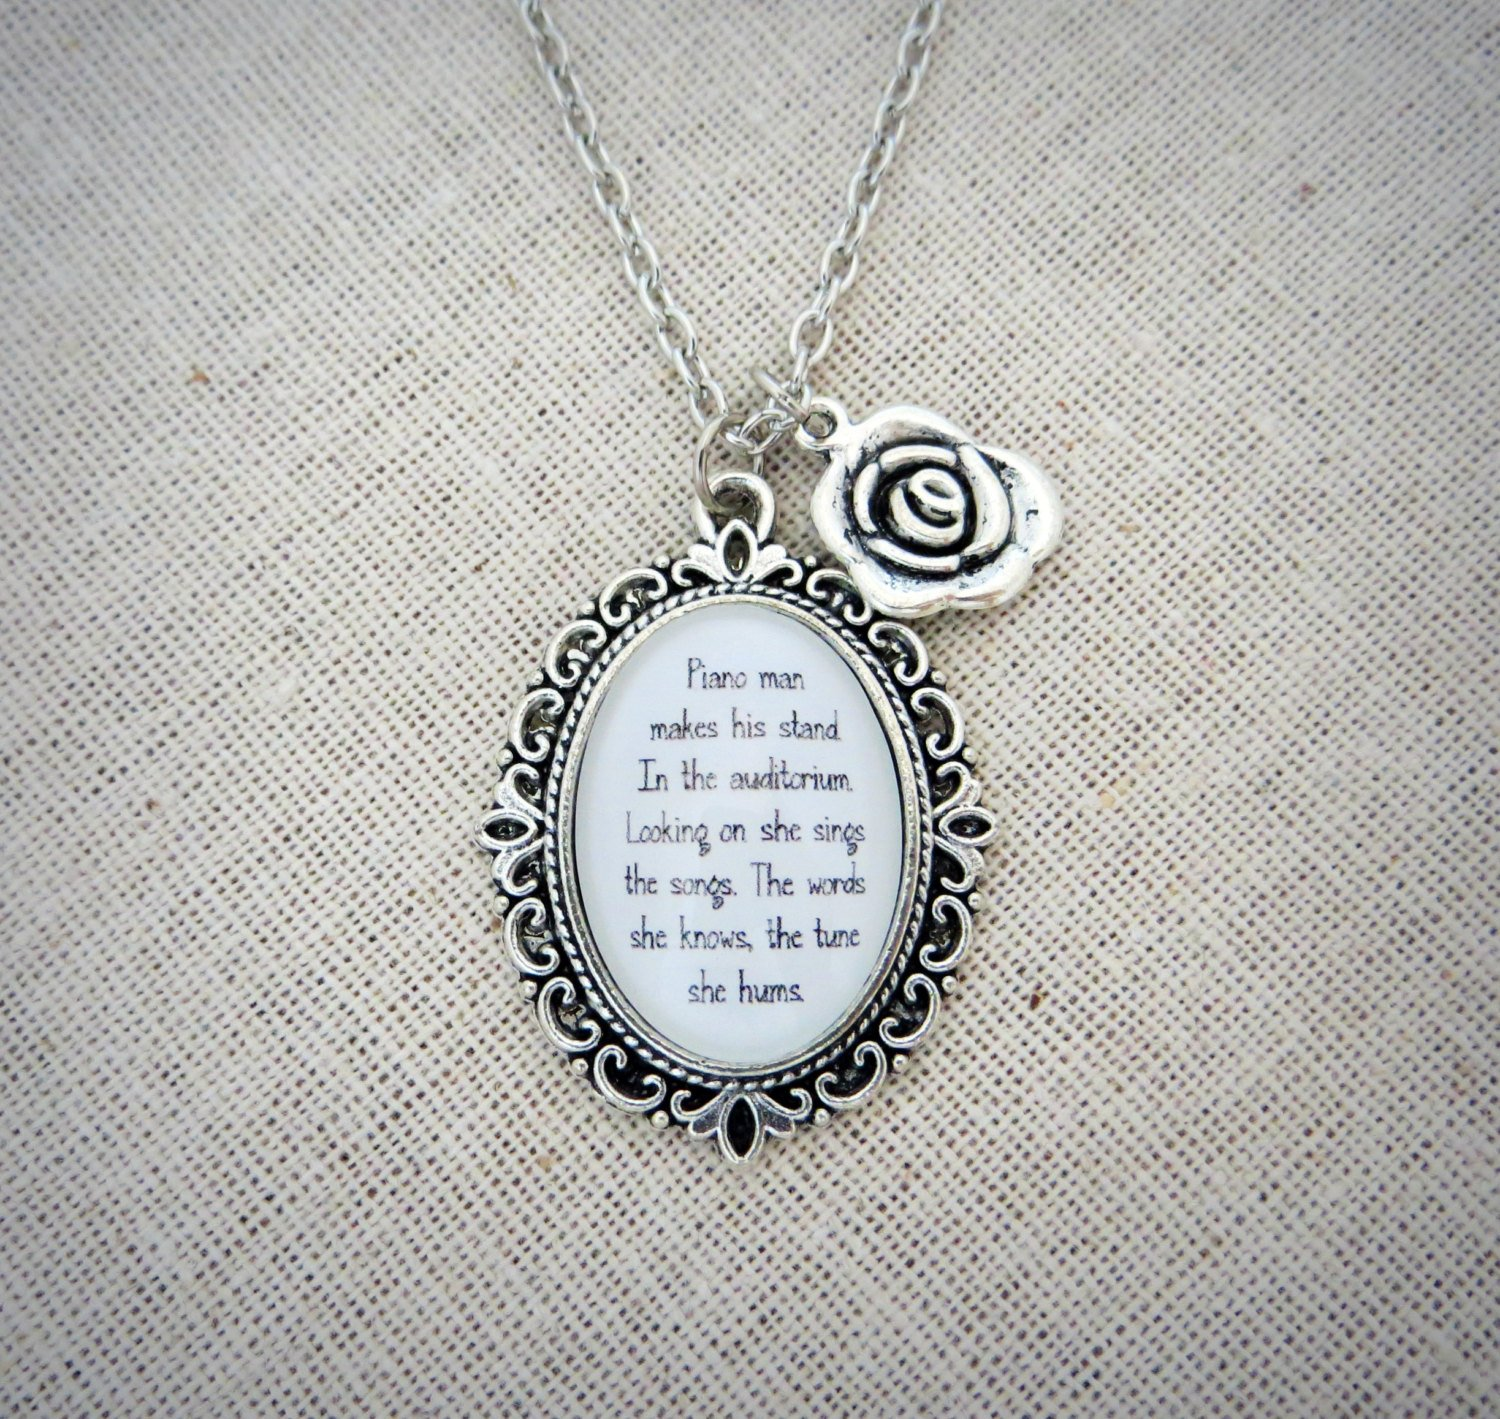 Elton John Tiny Dancer Inspired Lyrical Quote Necklace with Silver Flower Charm